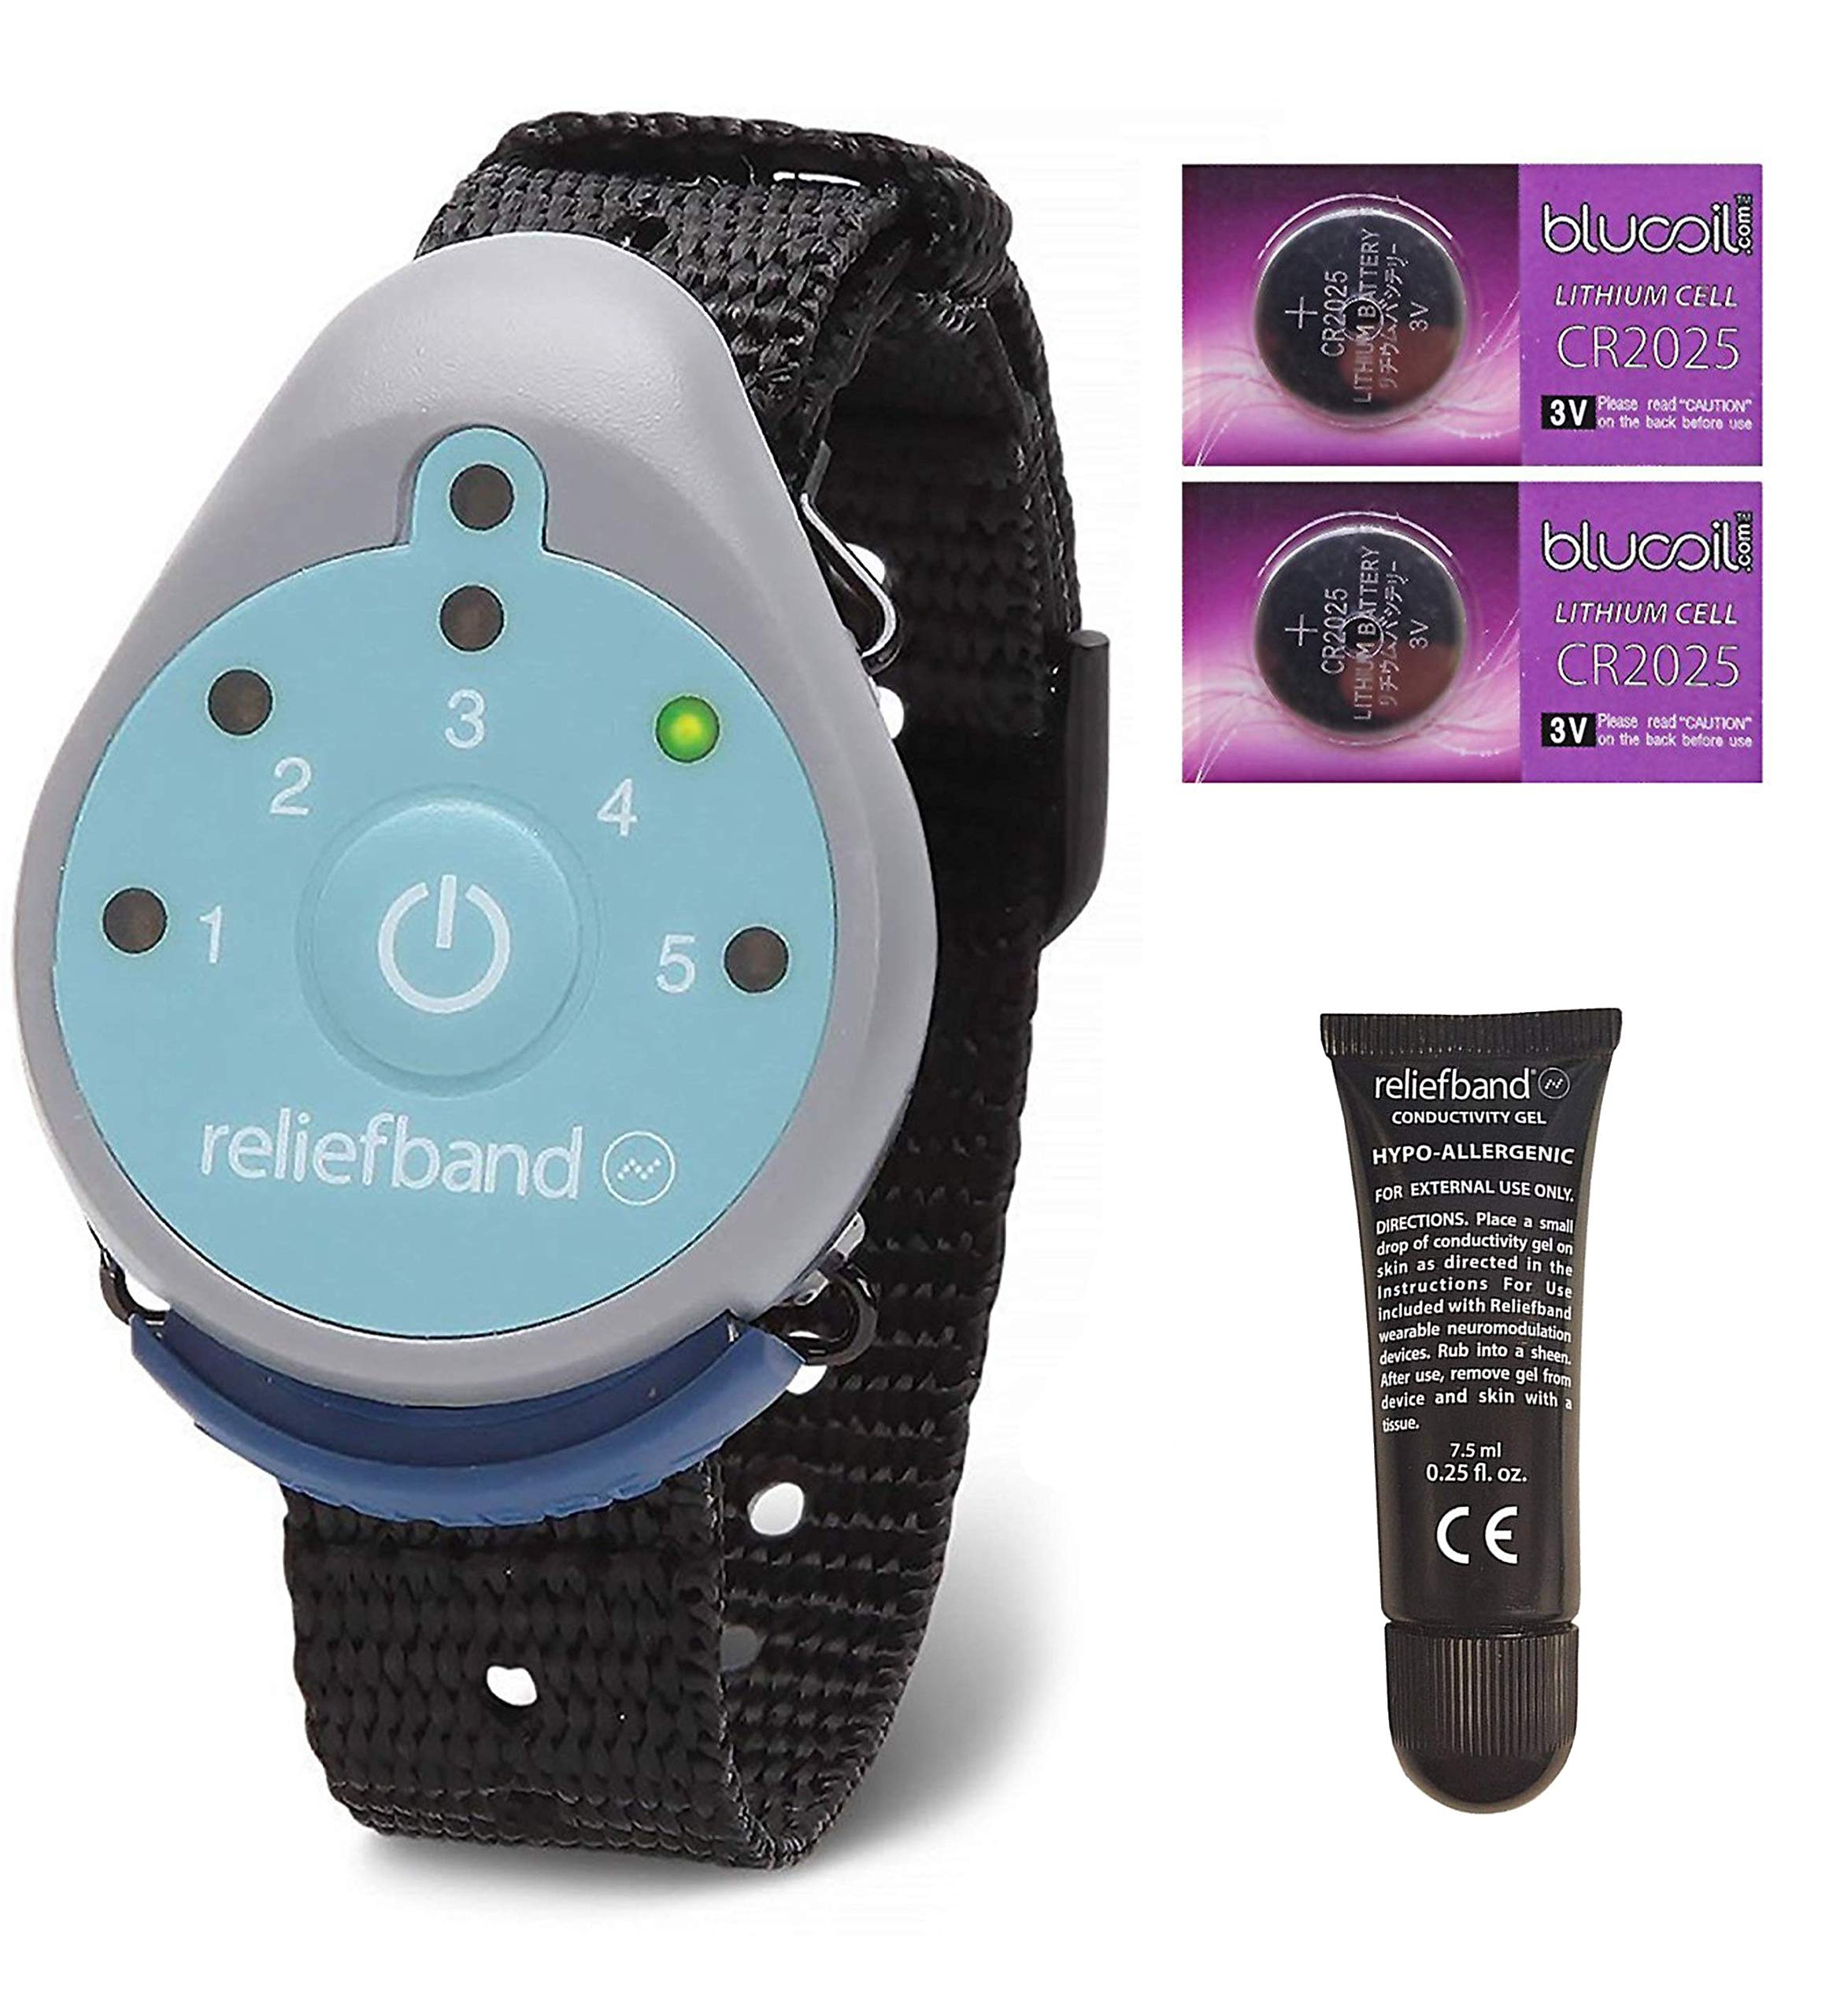 Reliefband for Motion and Morning Sickness Bundle with Replacement Conductivity Gel Tube 7.5ml, and 2 Blucoil CR2025 Batteries by blucoil